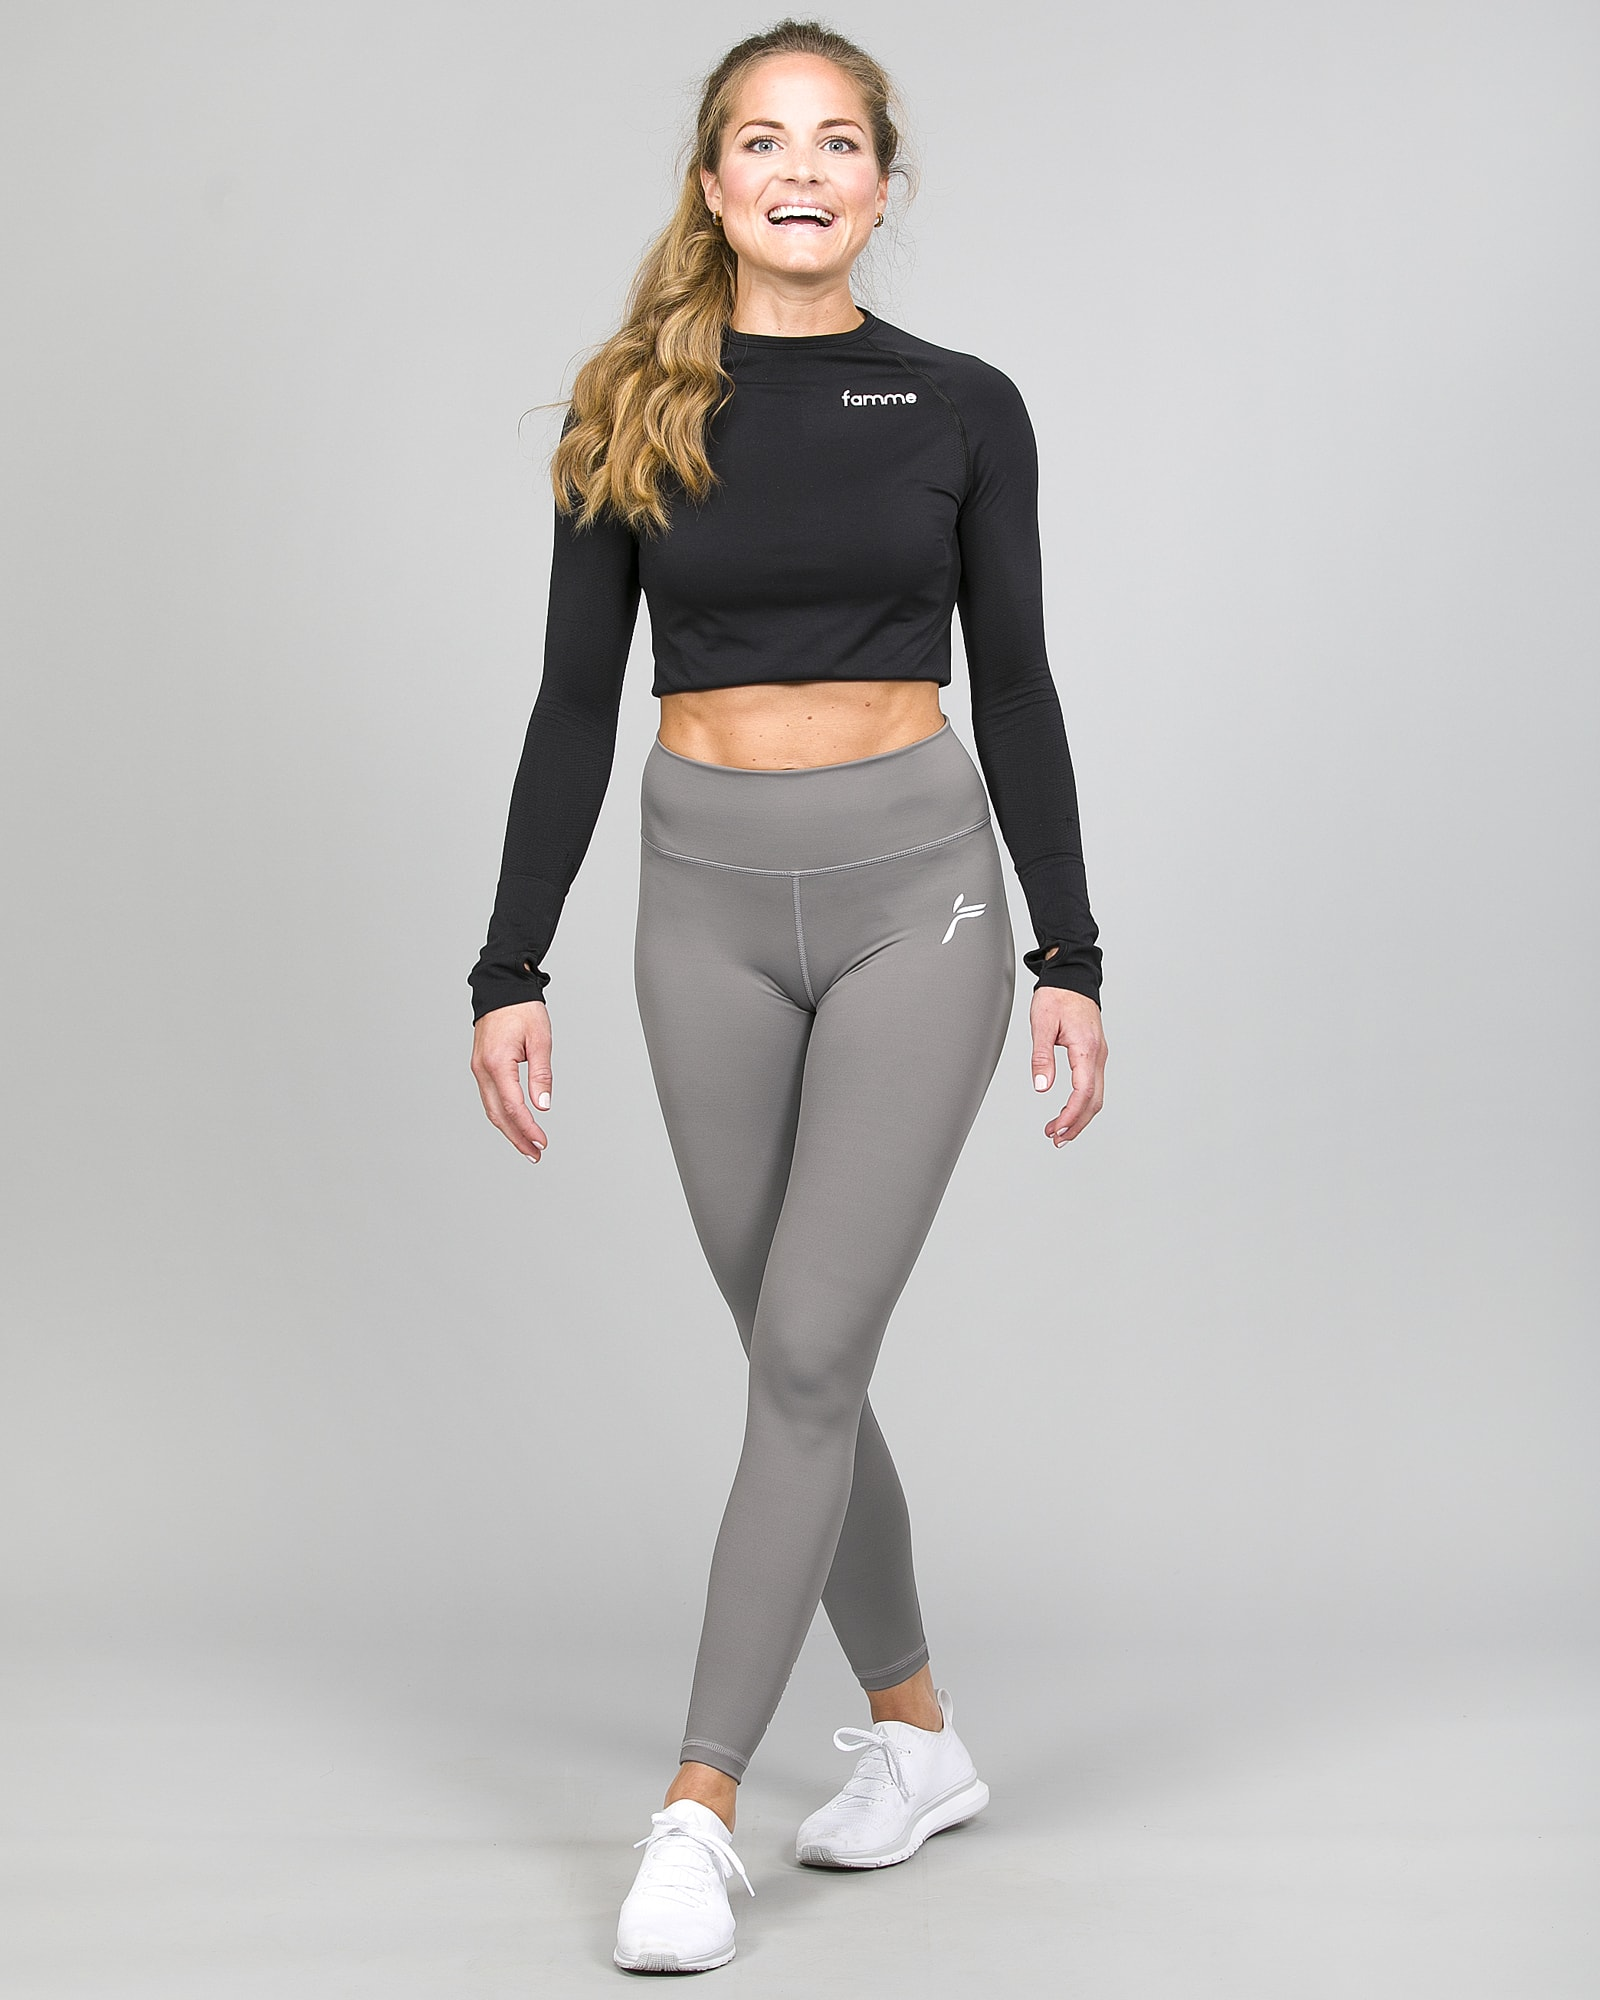 Famme Ocean Crop Top Black ocls-bk and Essential High Waist Legging - Grey ehwt-gr i